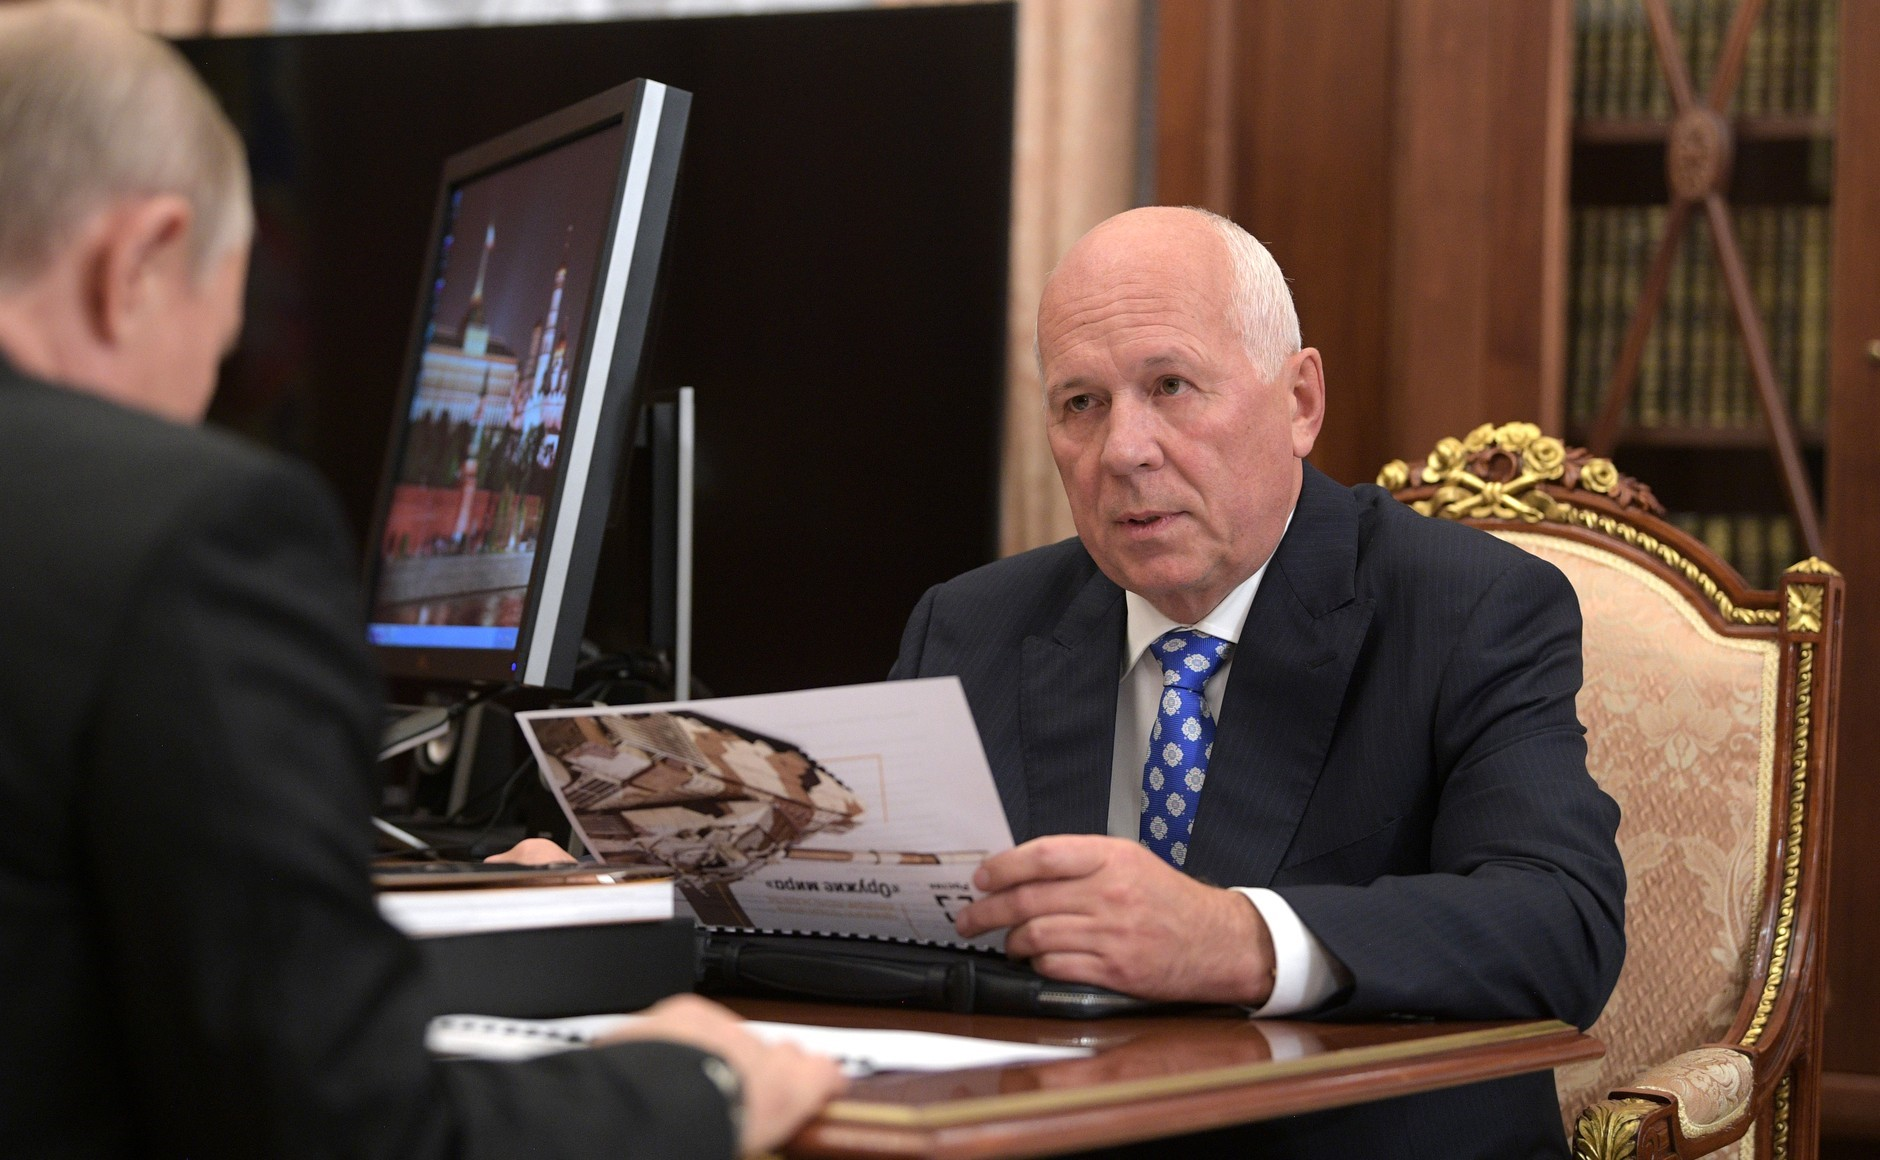 Rostec CEO Chemezov Gathers Steam